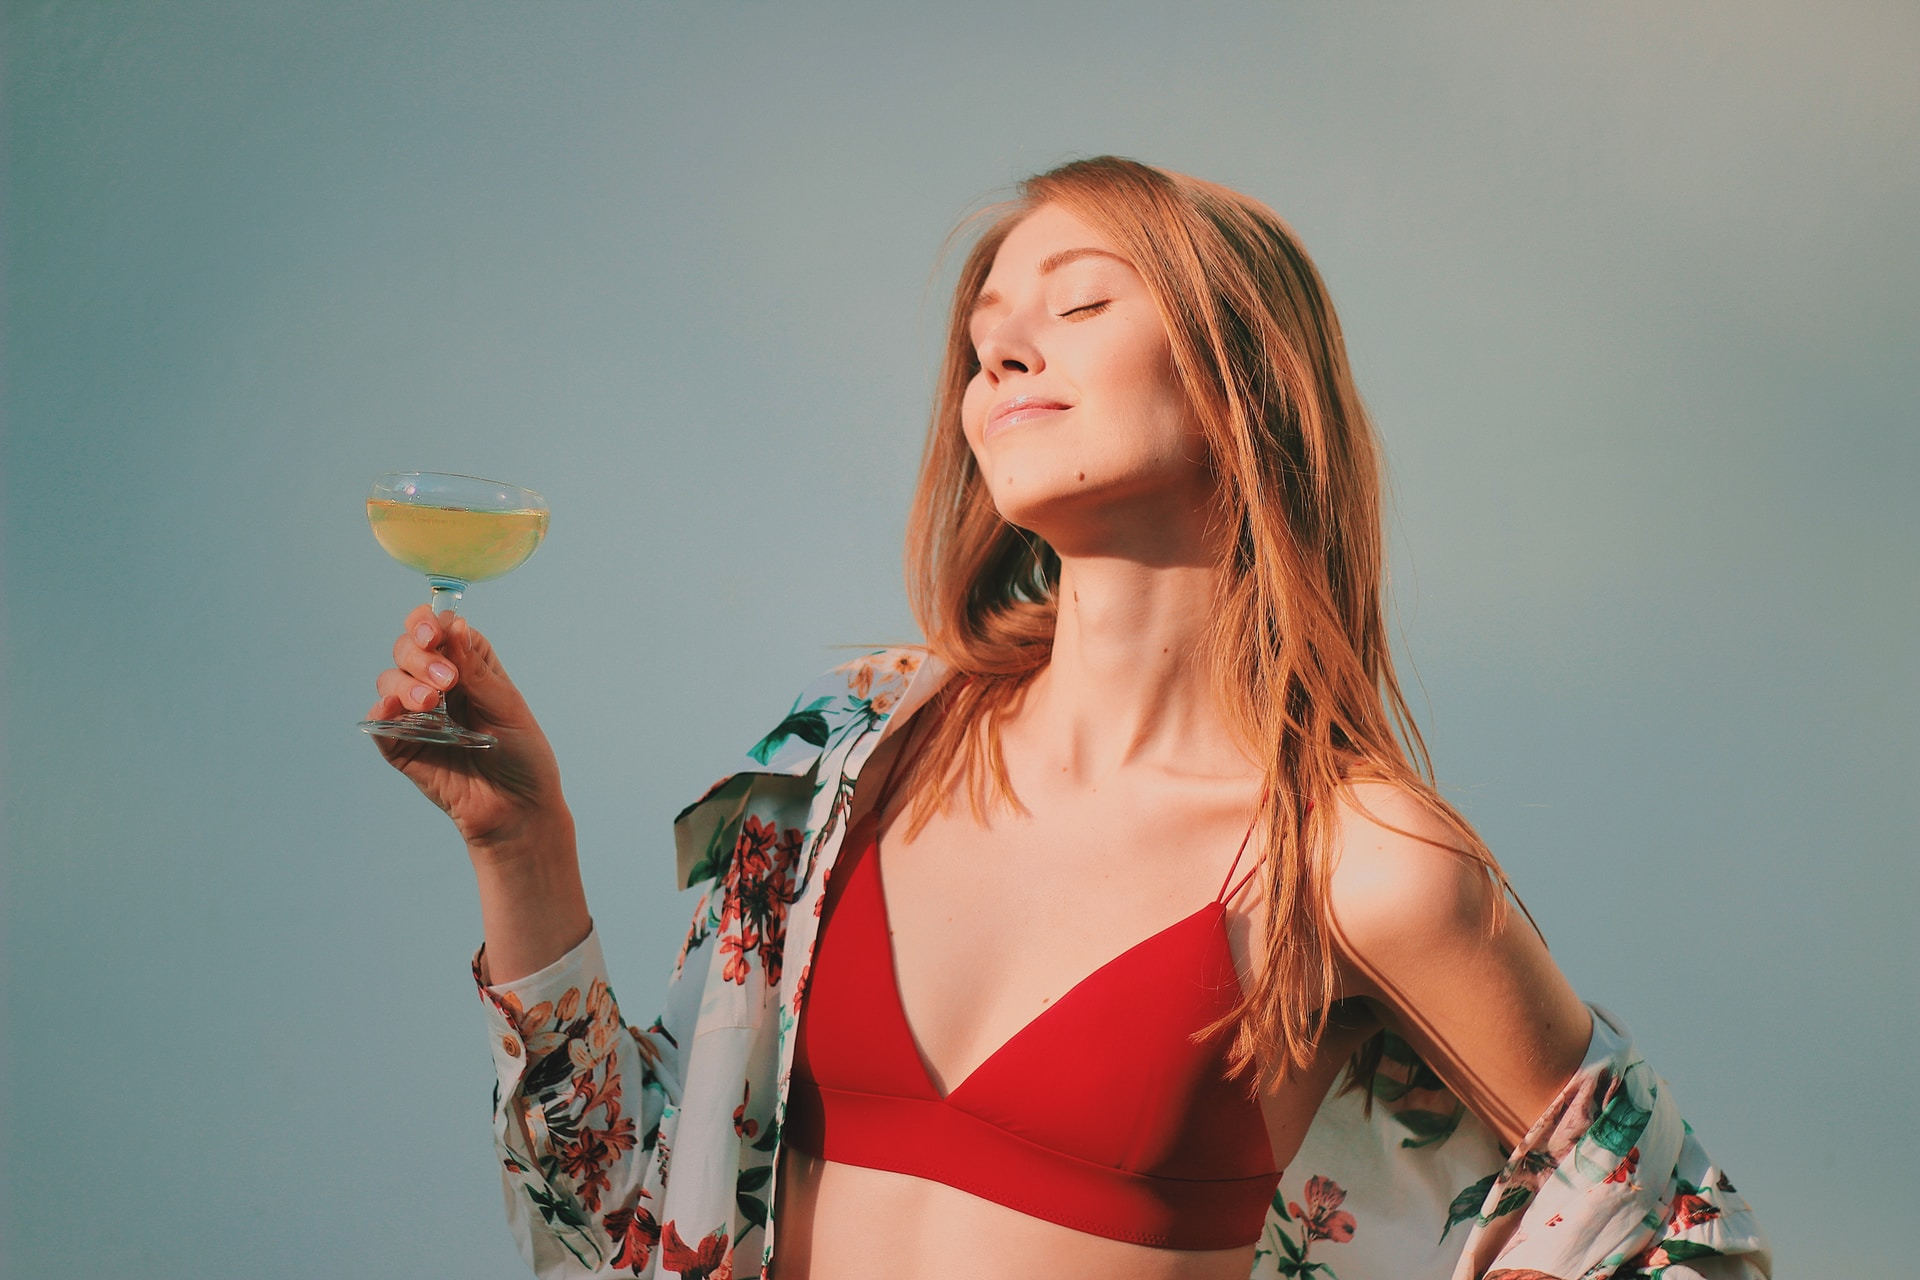 shallow focus photo of woman in red bikini top holding champagne glass